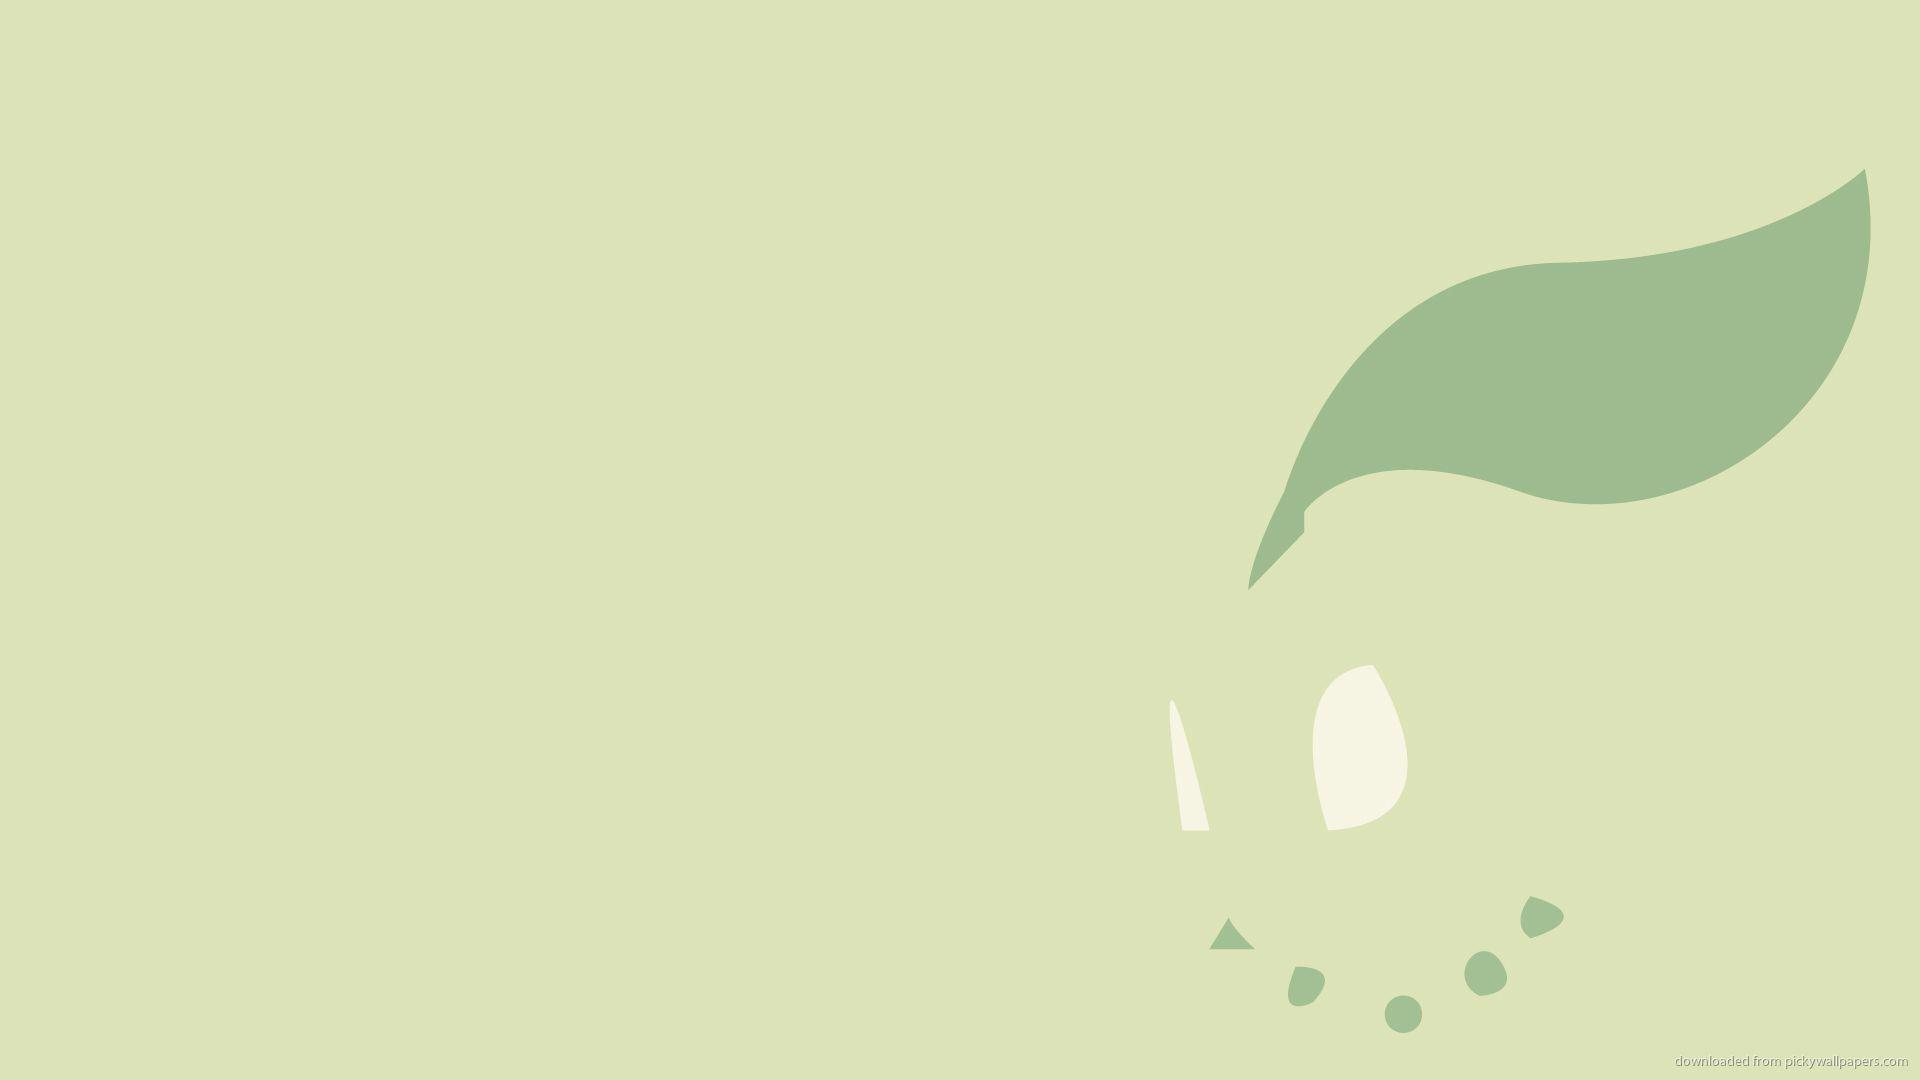 Chikorita | SBF31 Wiki | FANDOM powered by Wikia